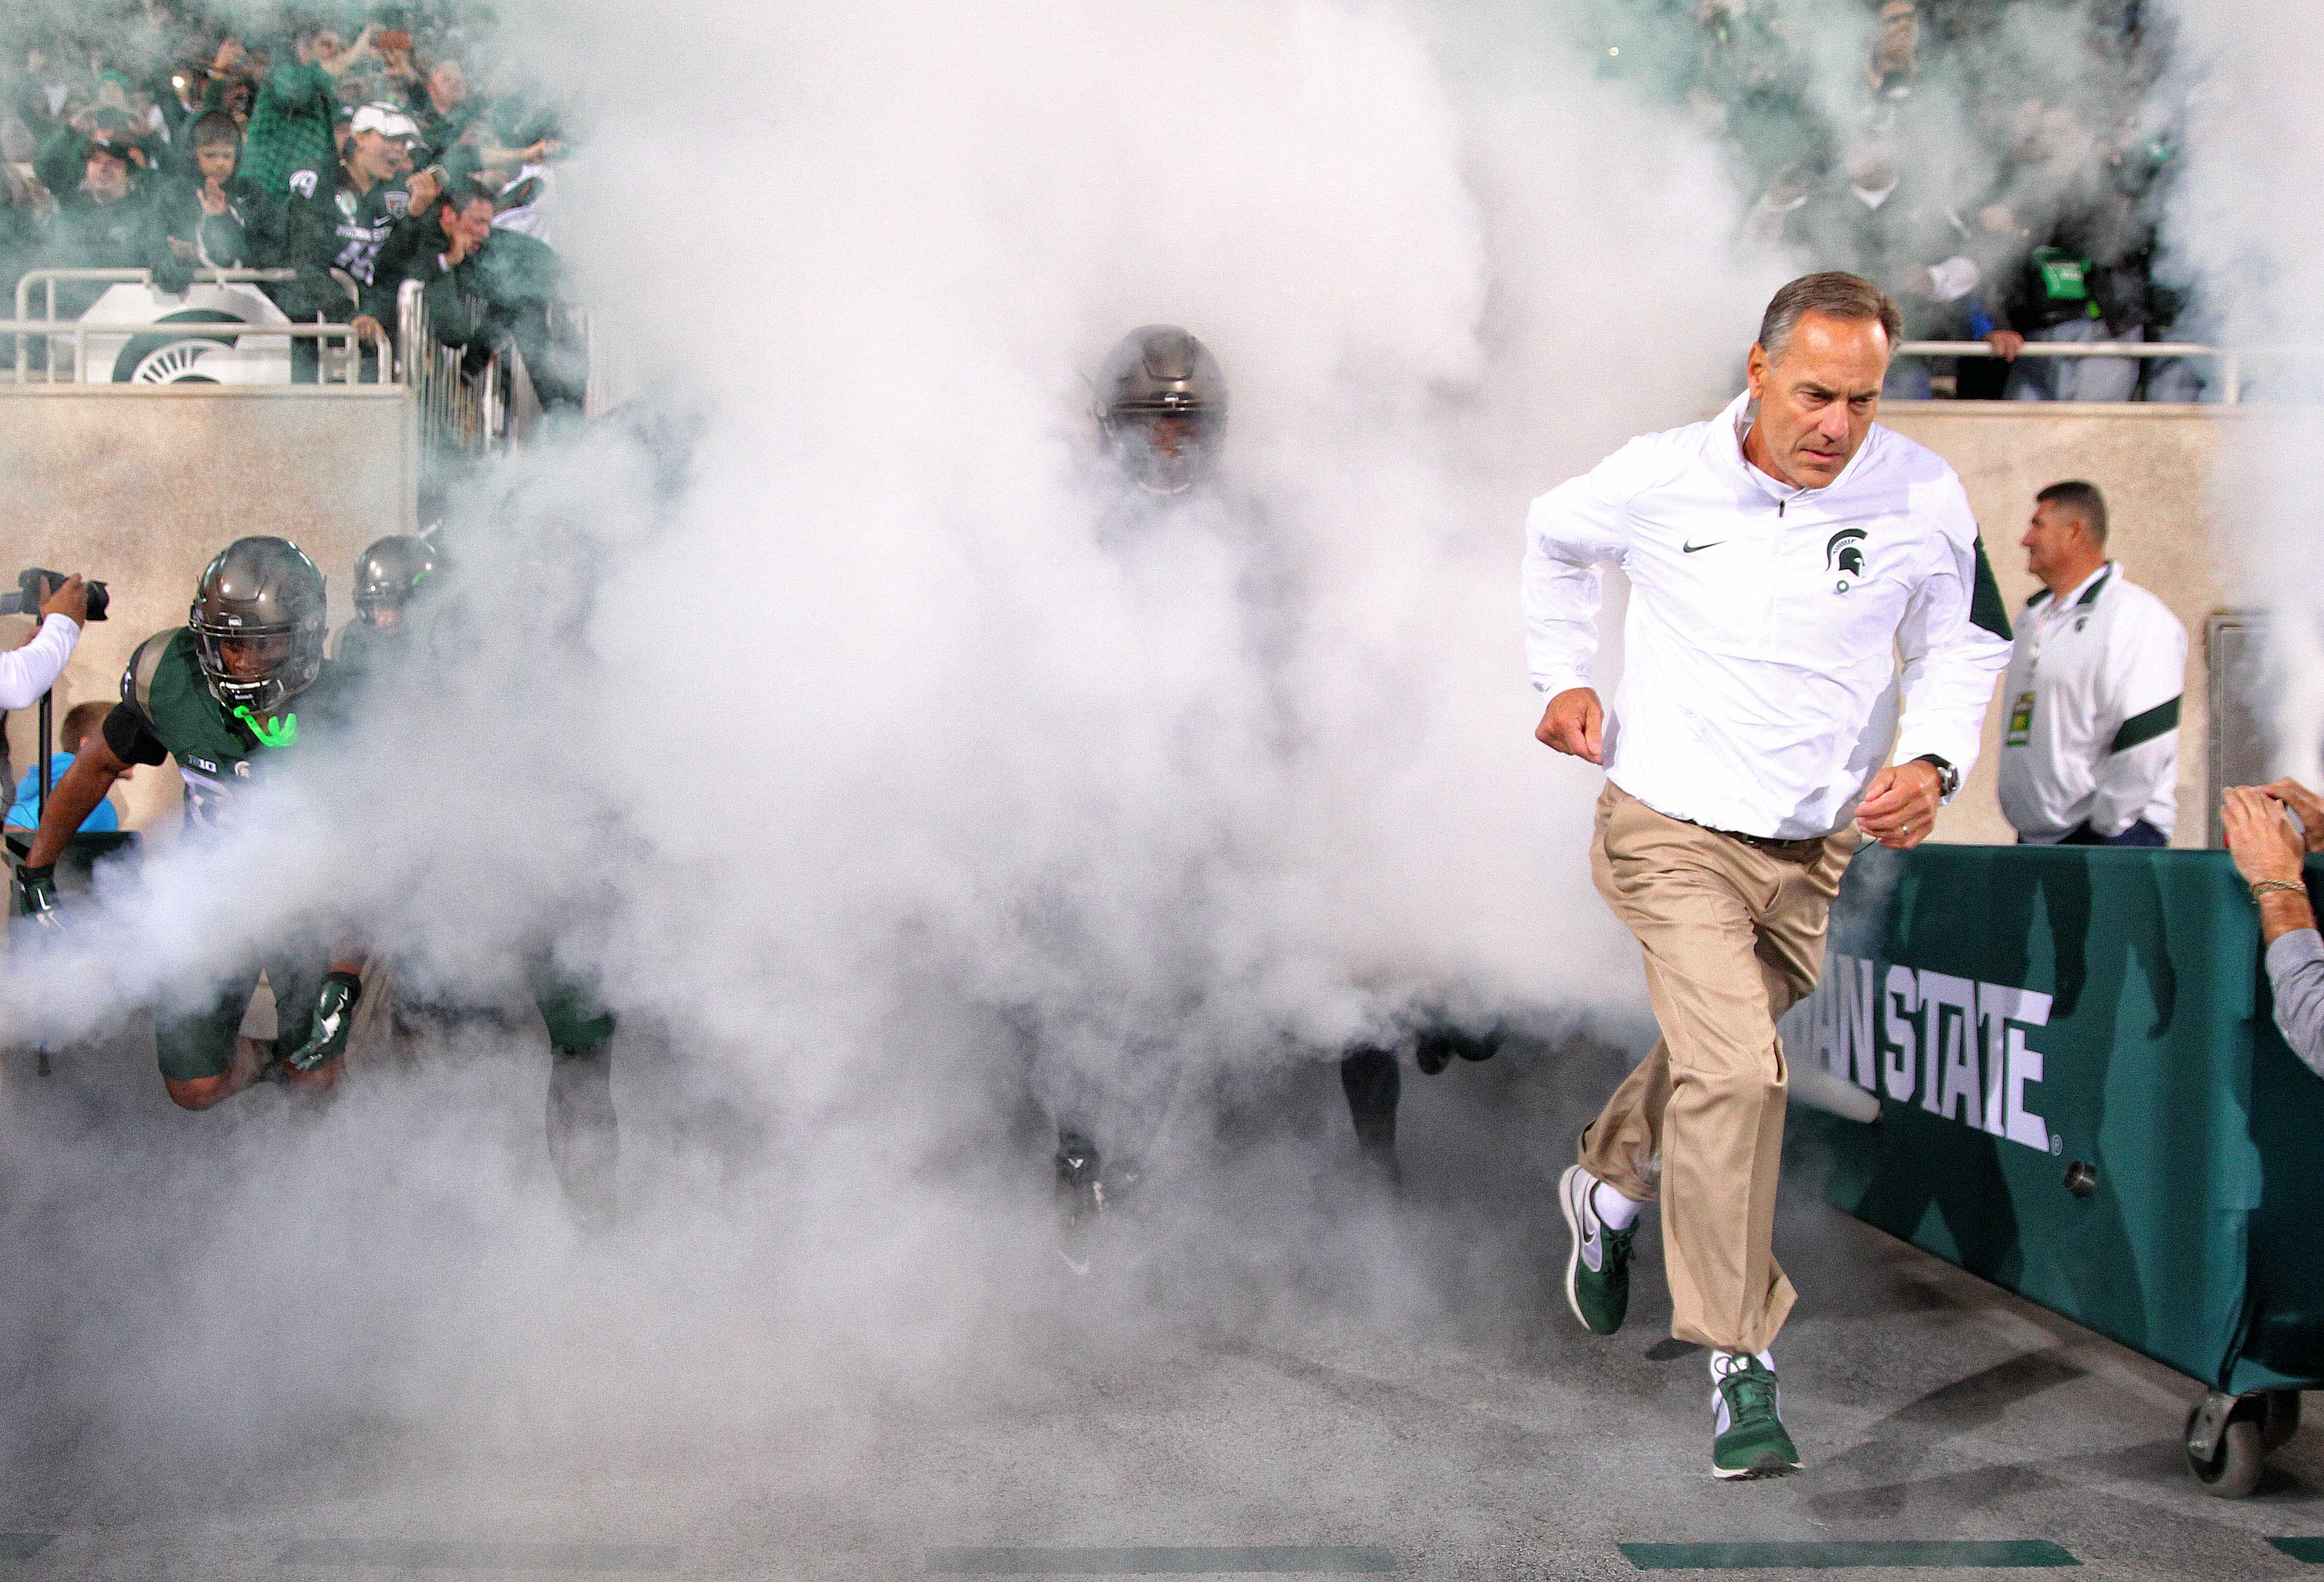 Sep 12, 2015; East Lansing, MI, USA; Michigan State Spartans head coach Mark Dantonio brings his team onto the flied prior to a game at Spartan Stadium. Mandatory Credit: Mike Carter-USA TODAY Sports